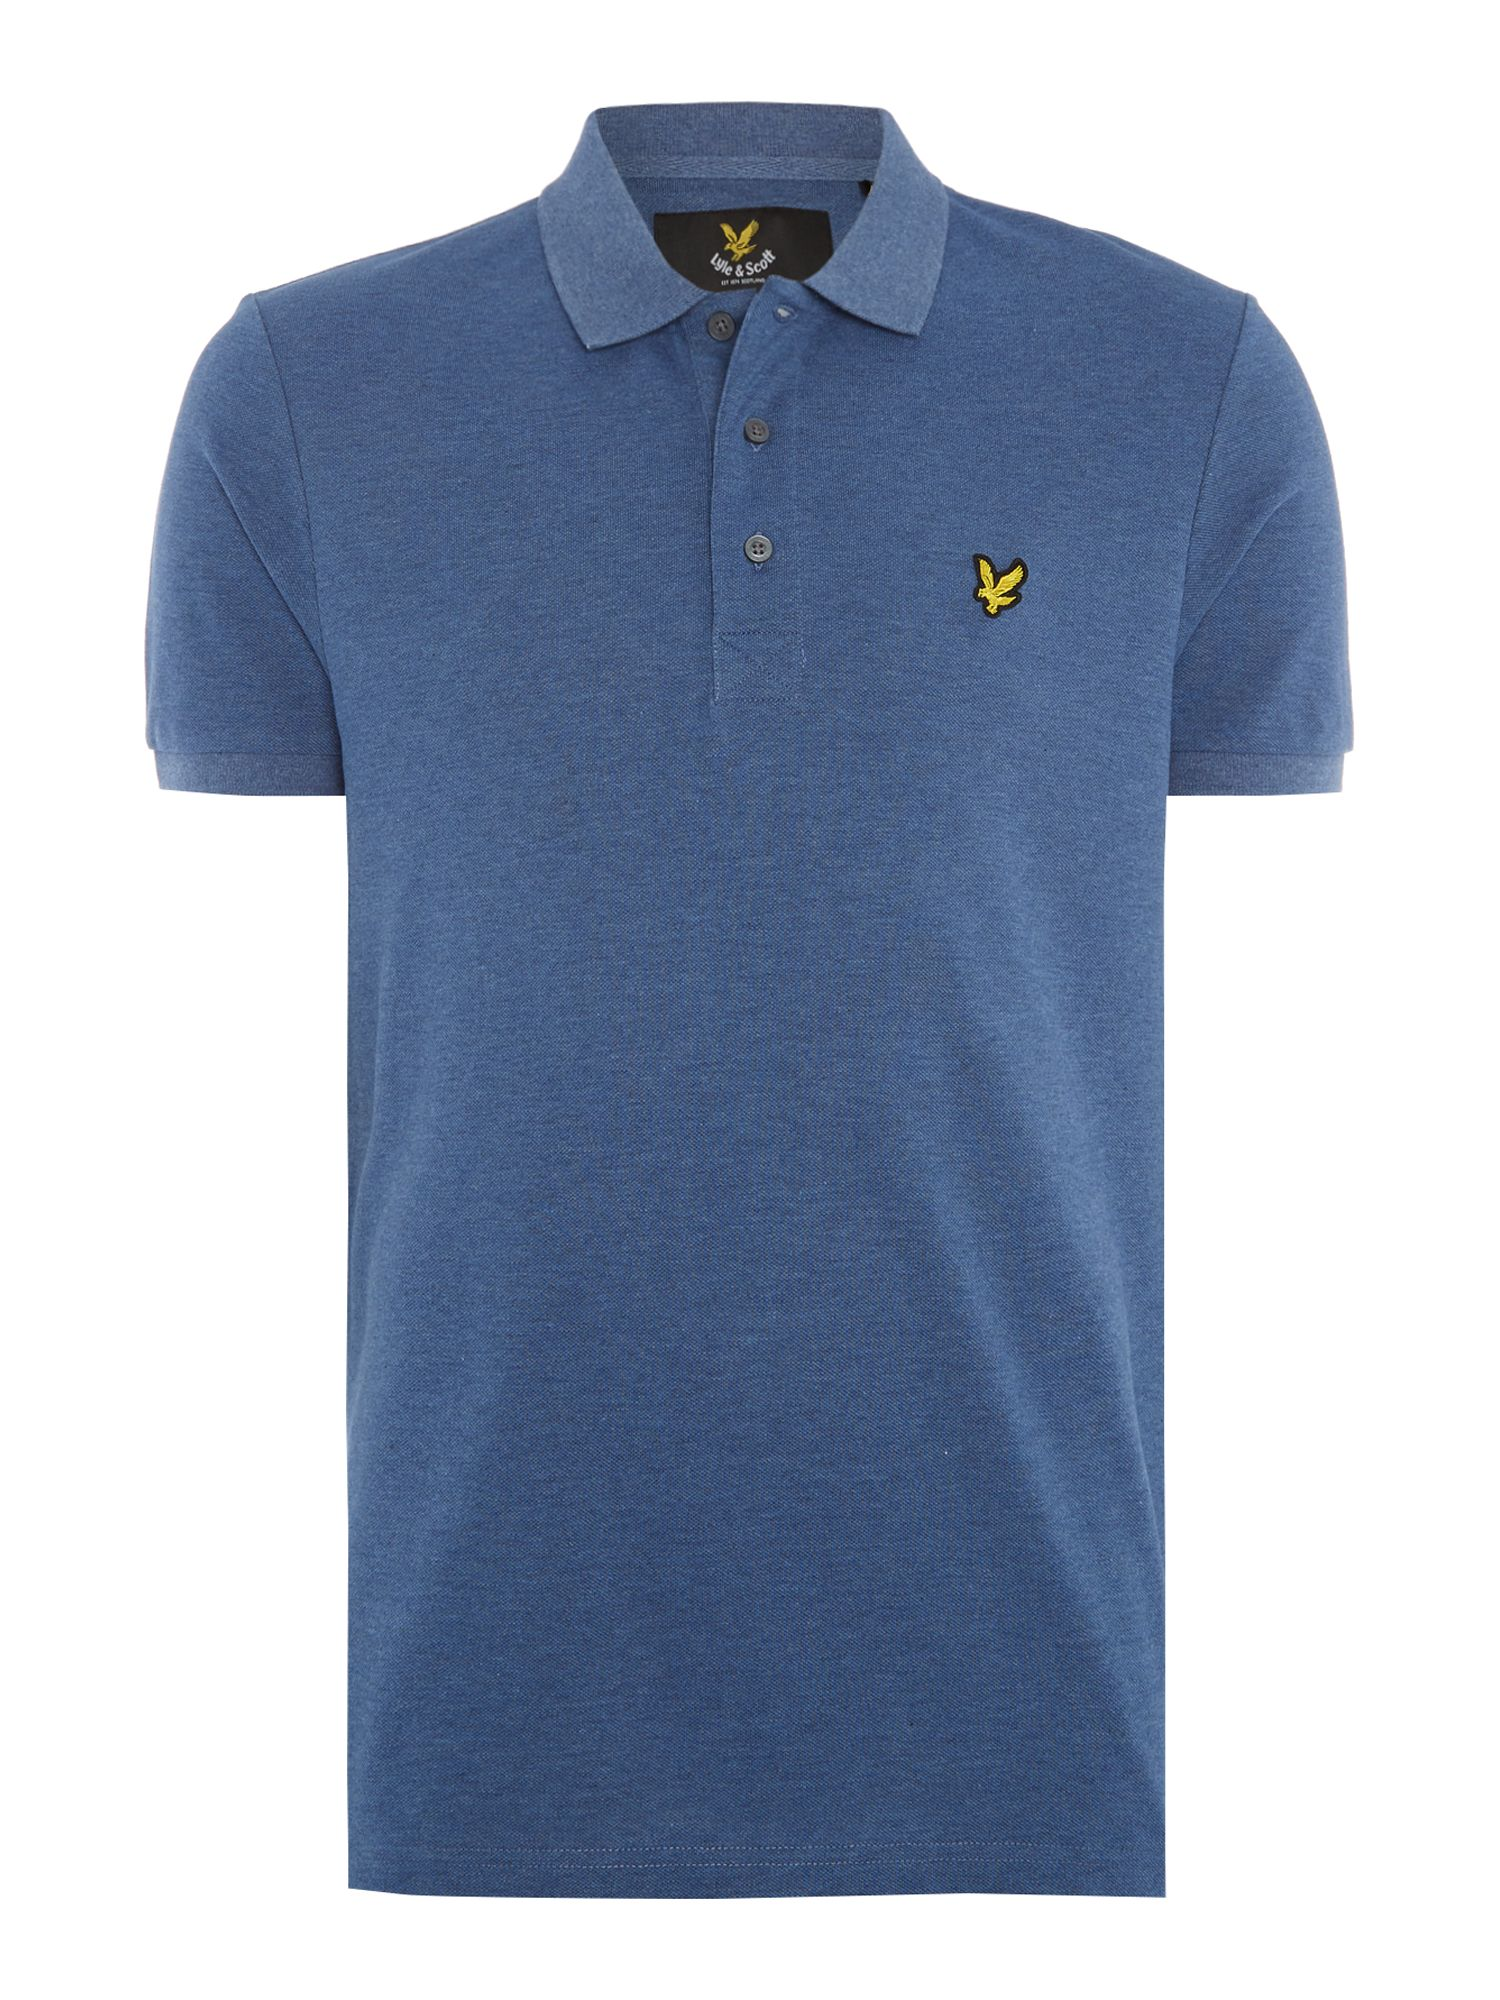 Men's Lyle and Scott Short Sleeve Classic Polo, Indigo